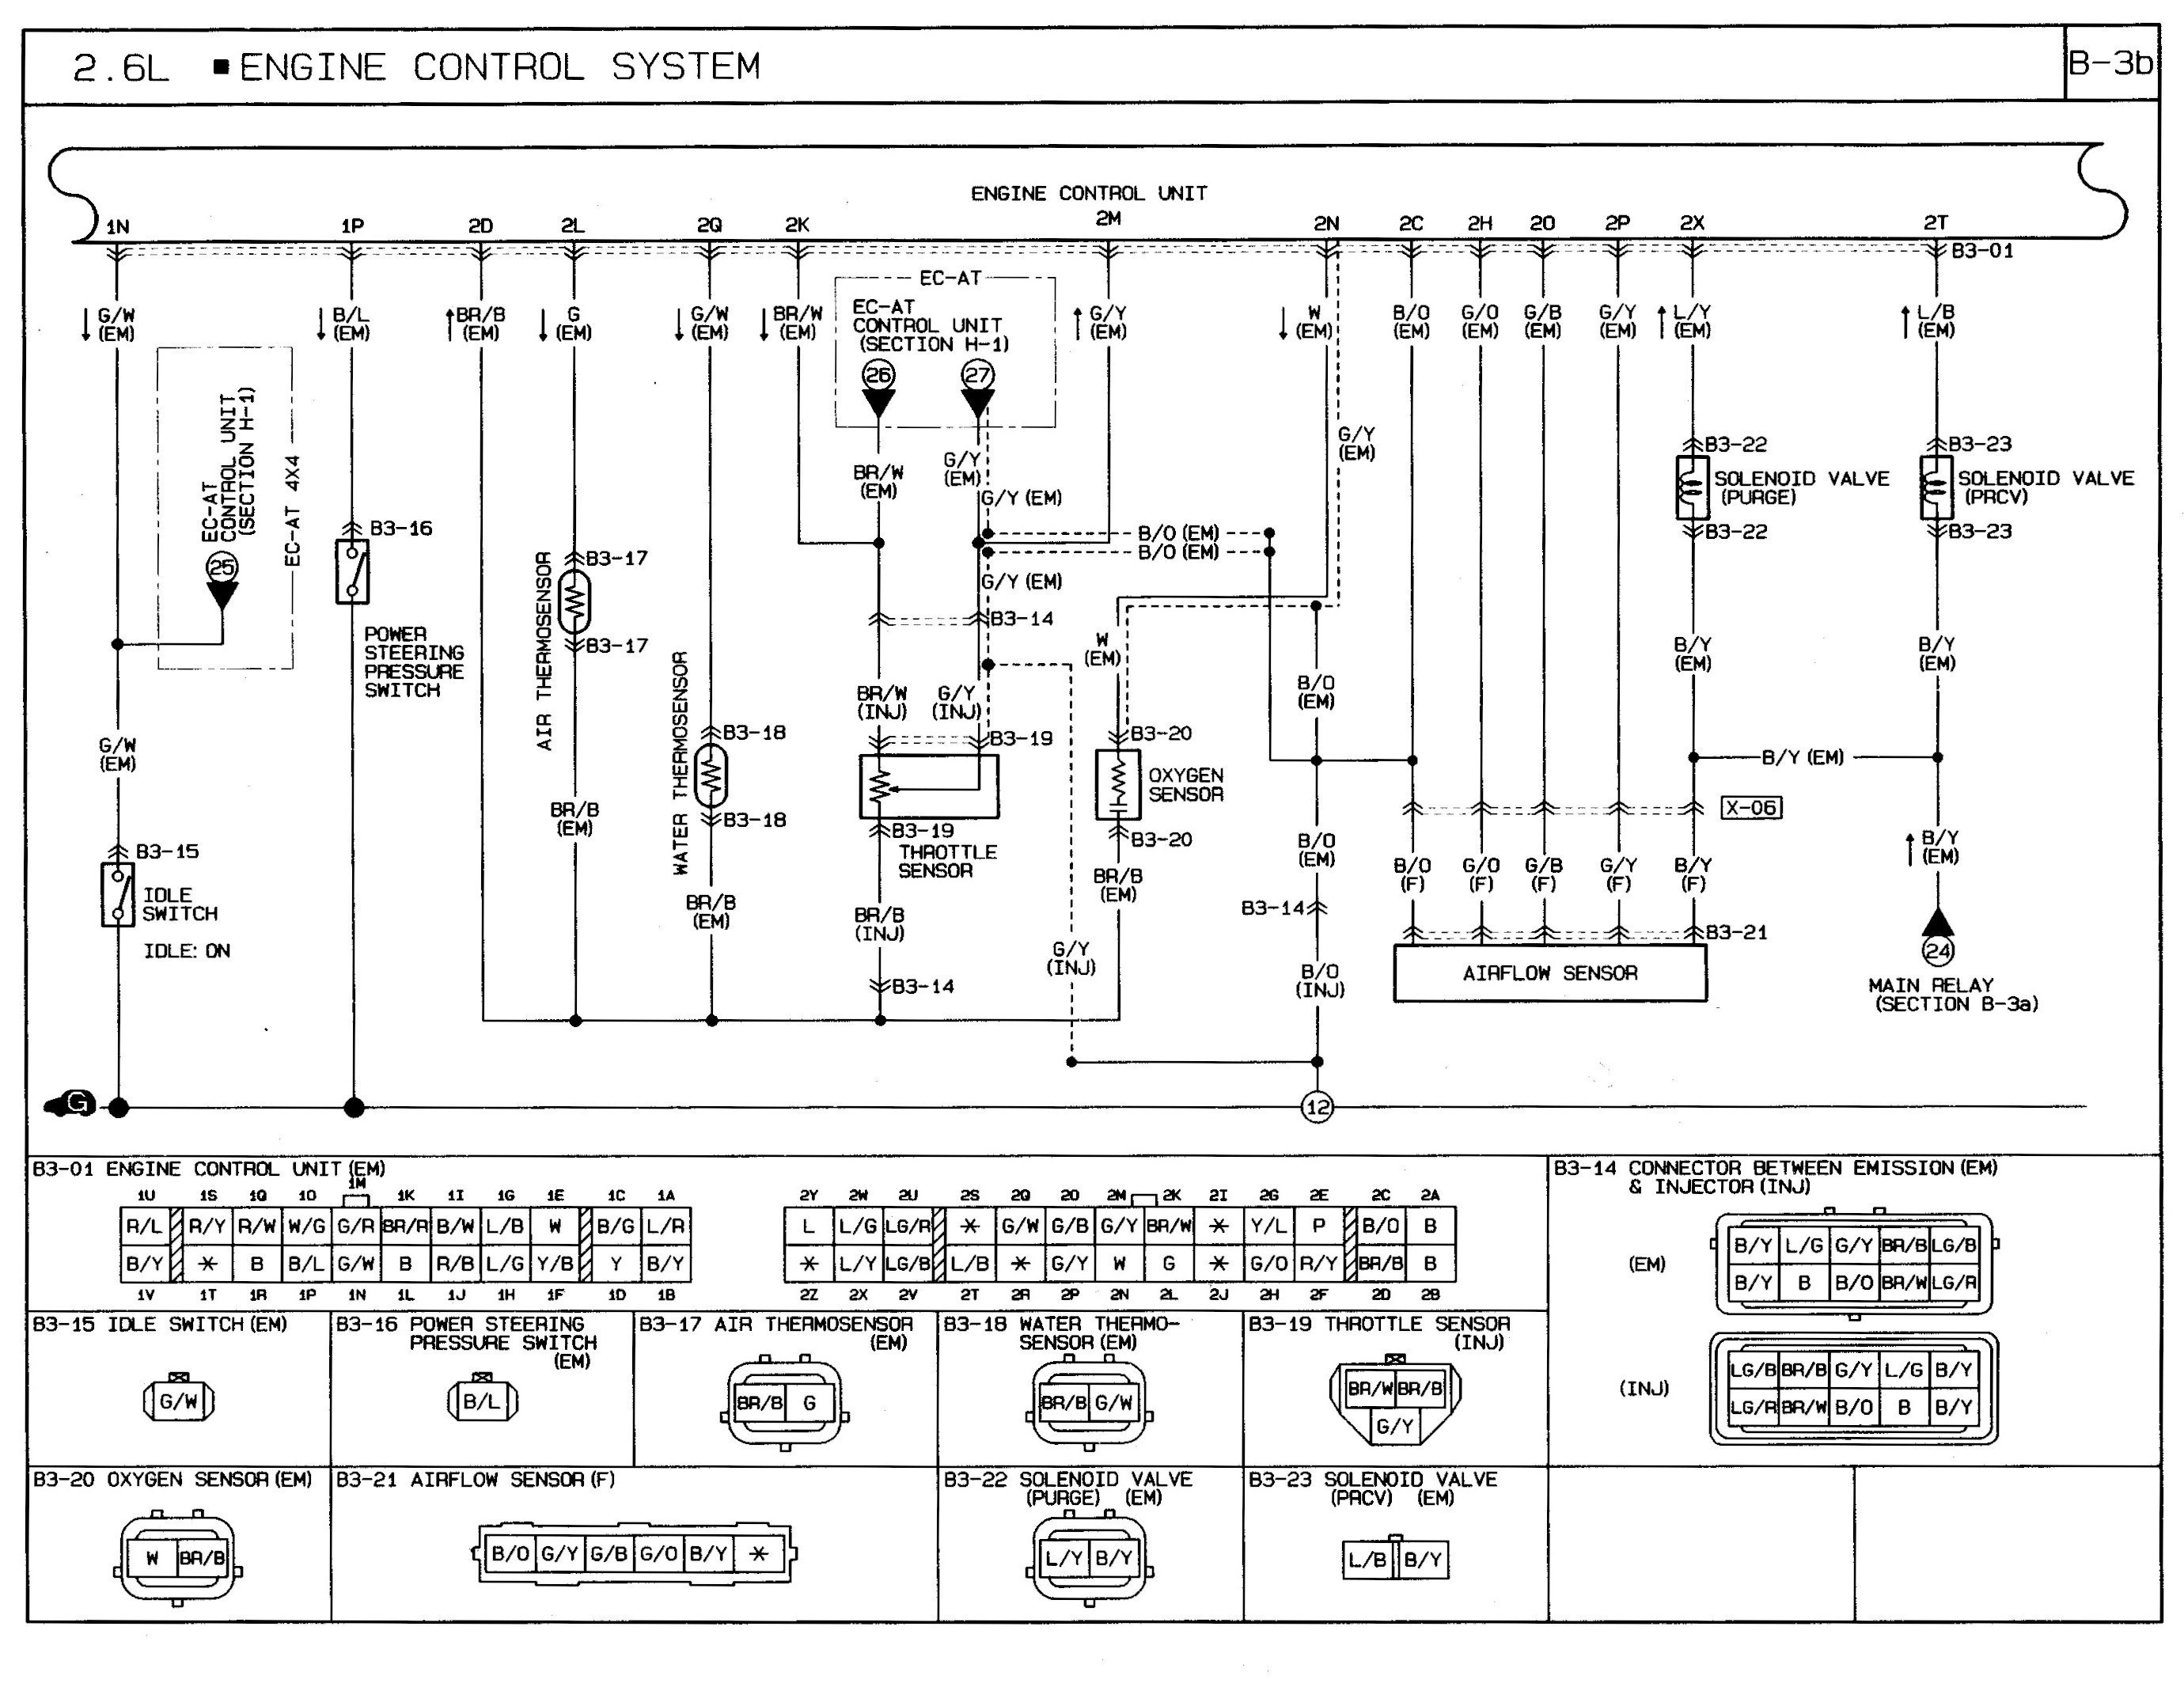 Mazda 3 Headlight Wiring - 2003 International 4300 Engine Wiring Diagram -  5pin.ajingemut.decorresine.itWiring Diagram Resource